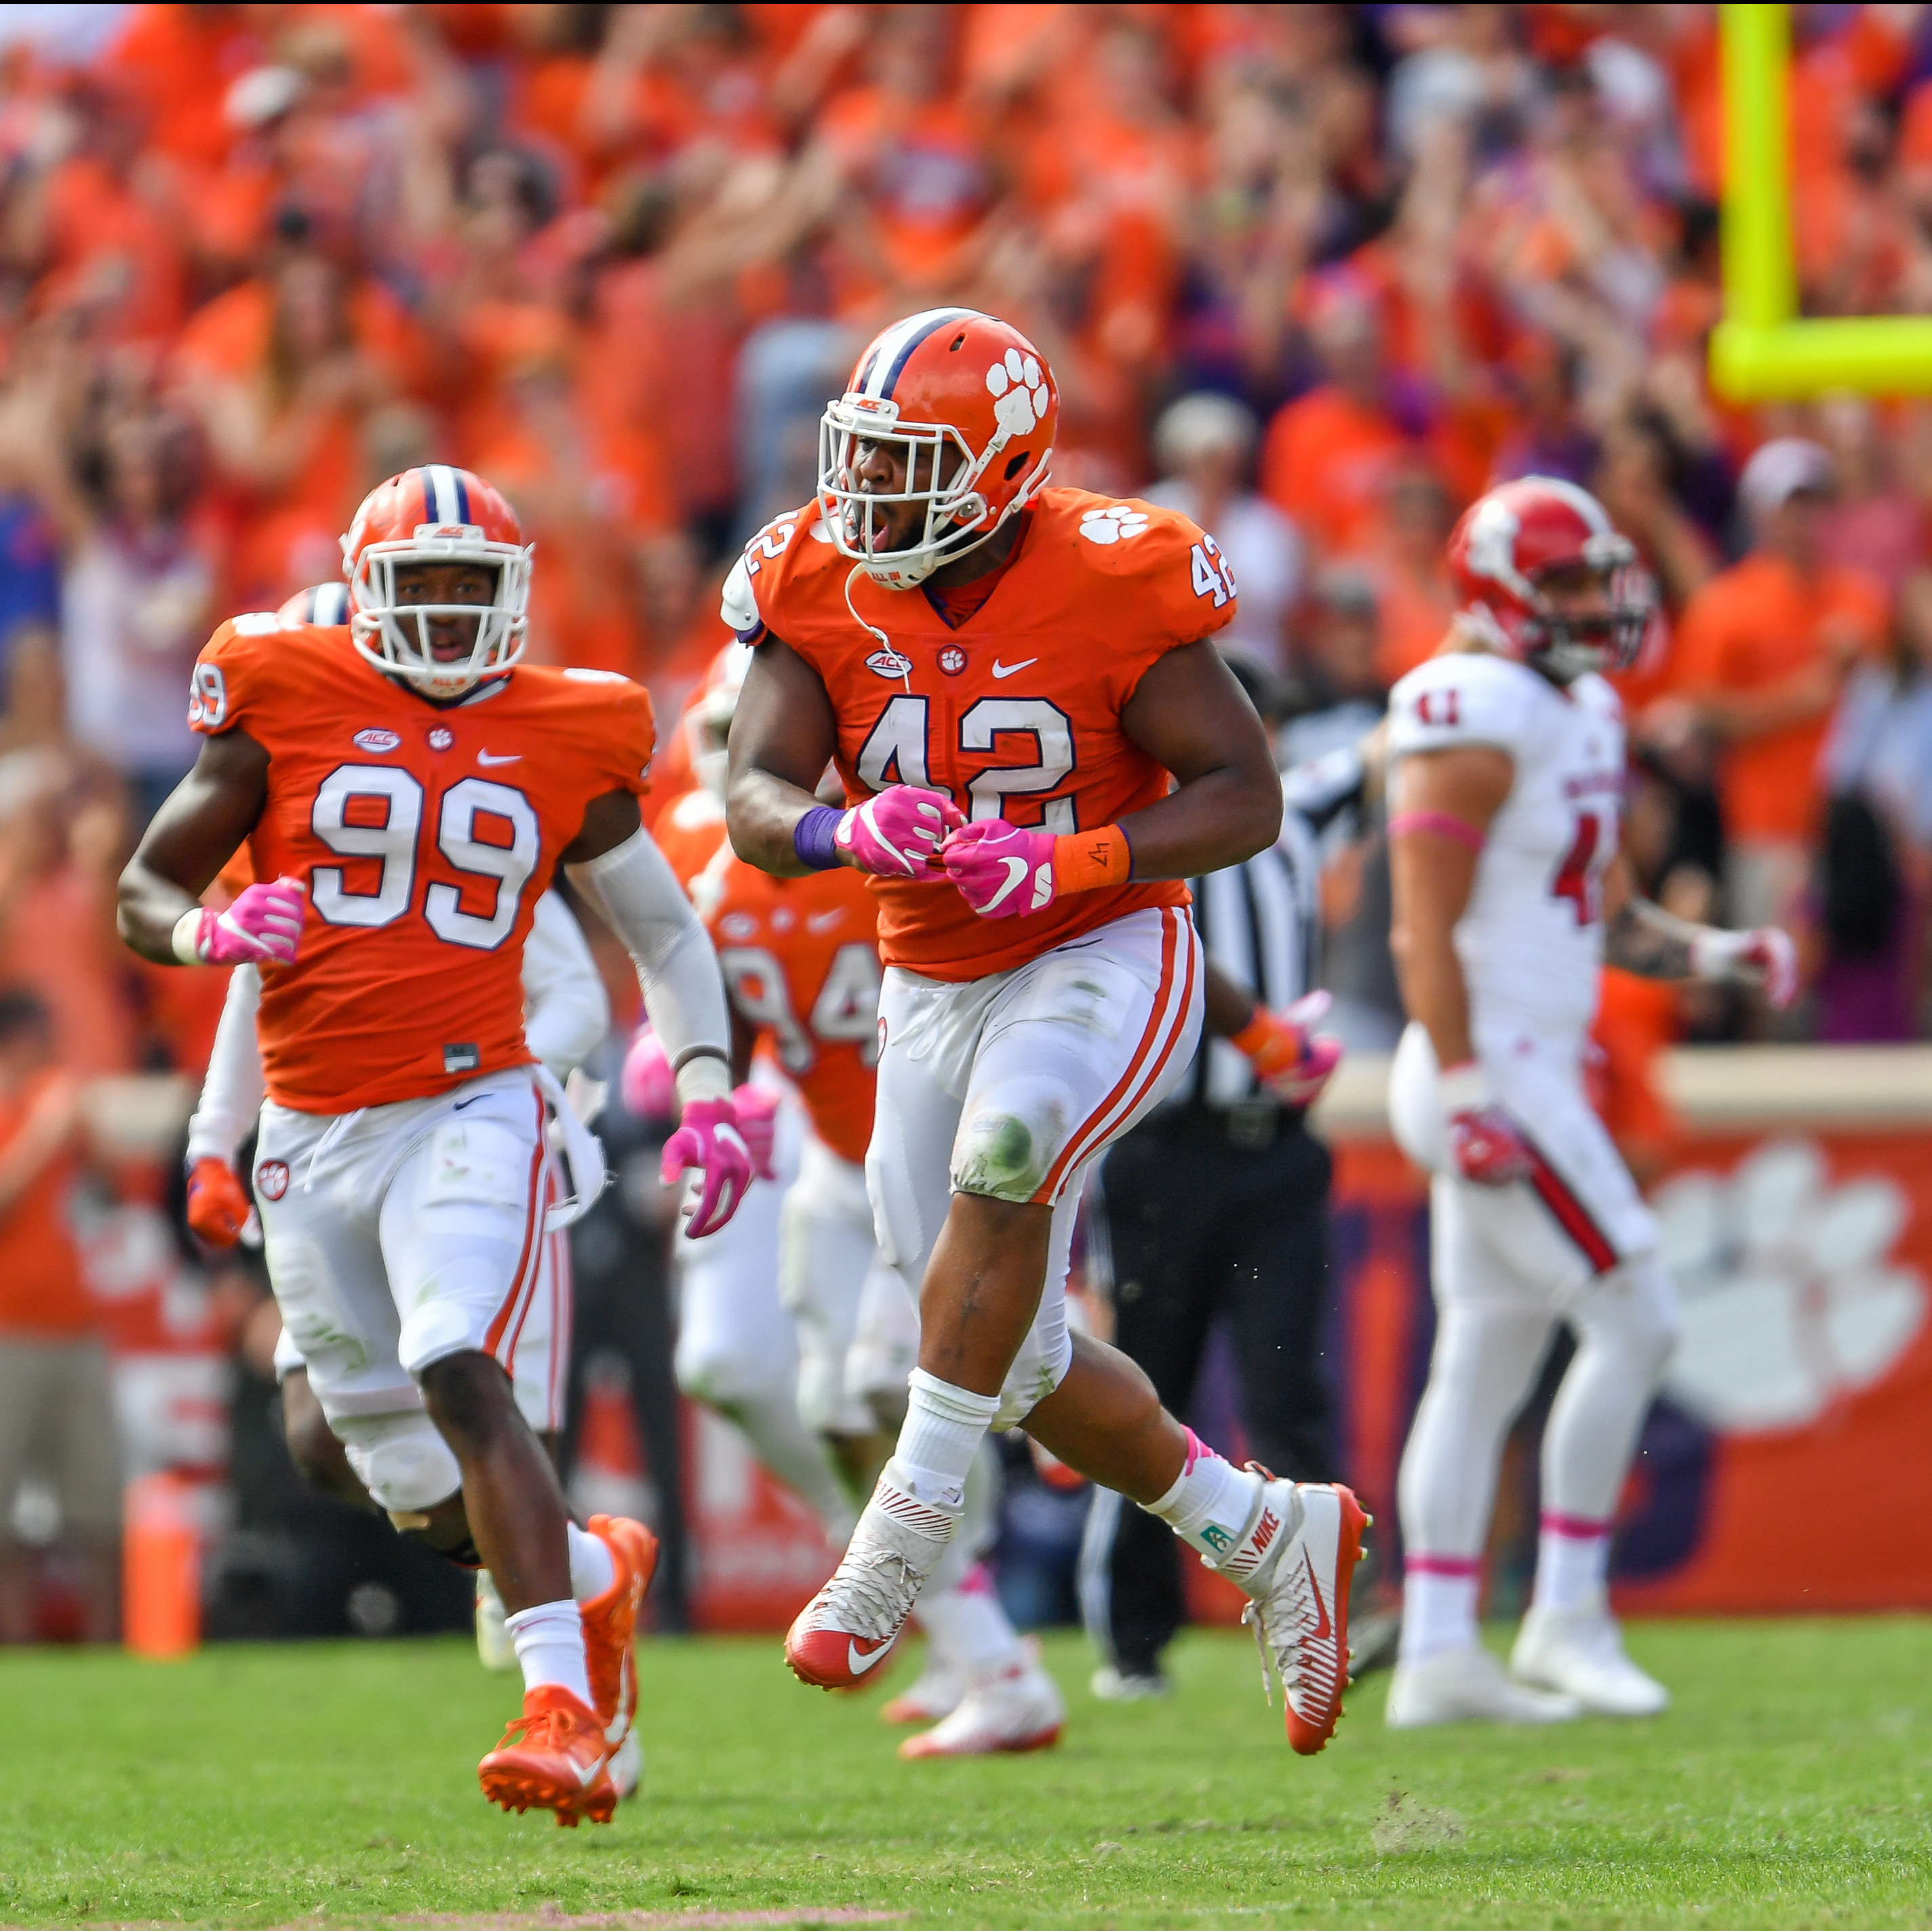 GAMEDAY GUIDE: Clemson at Florida State